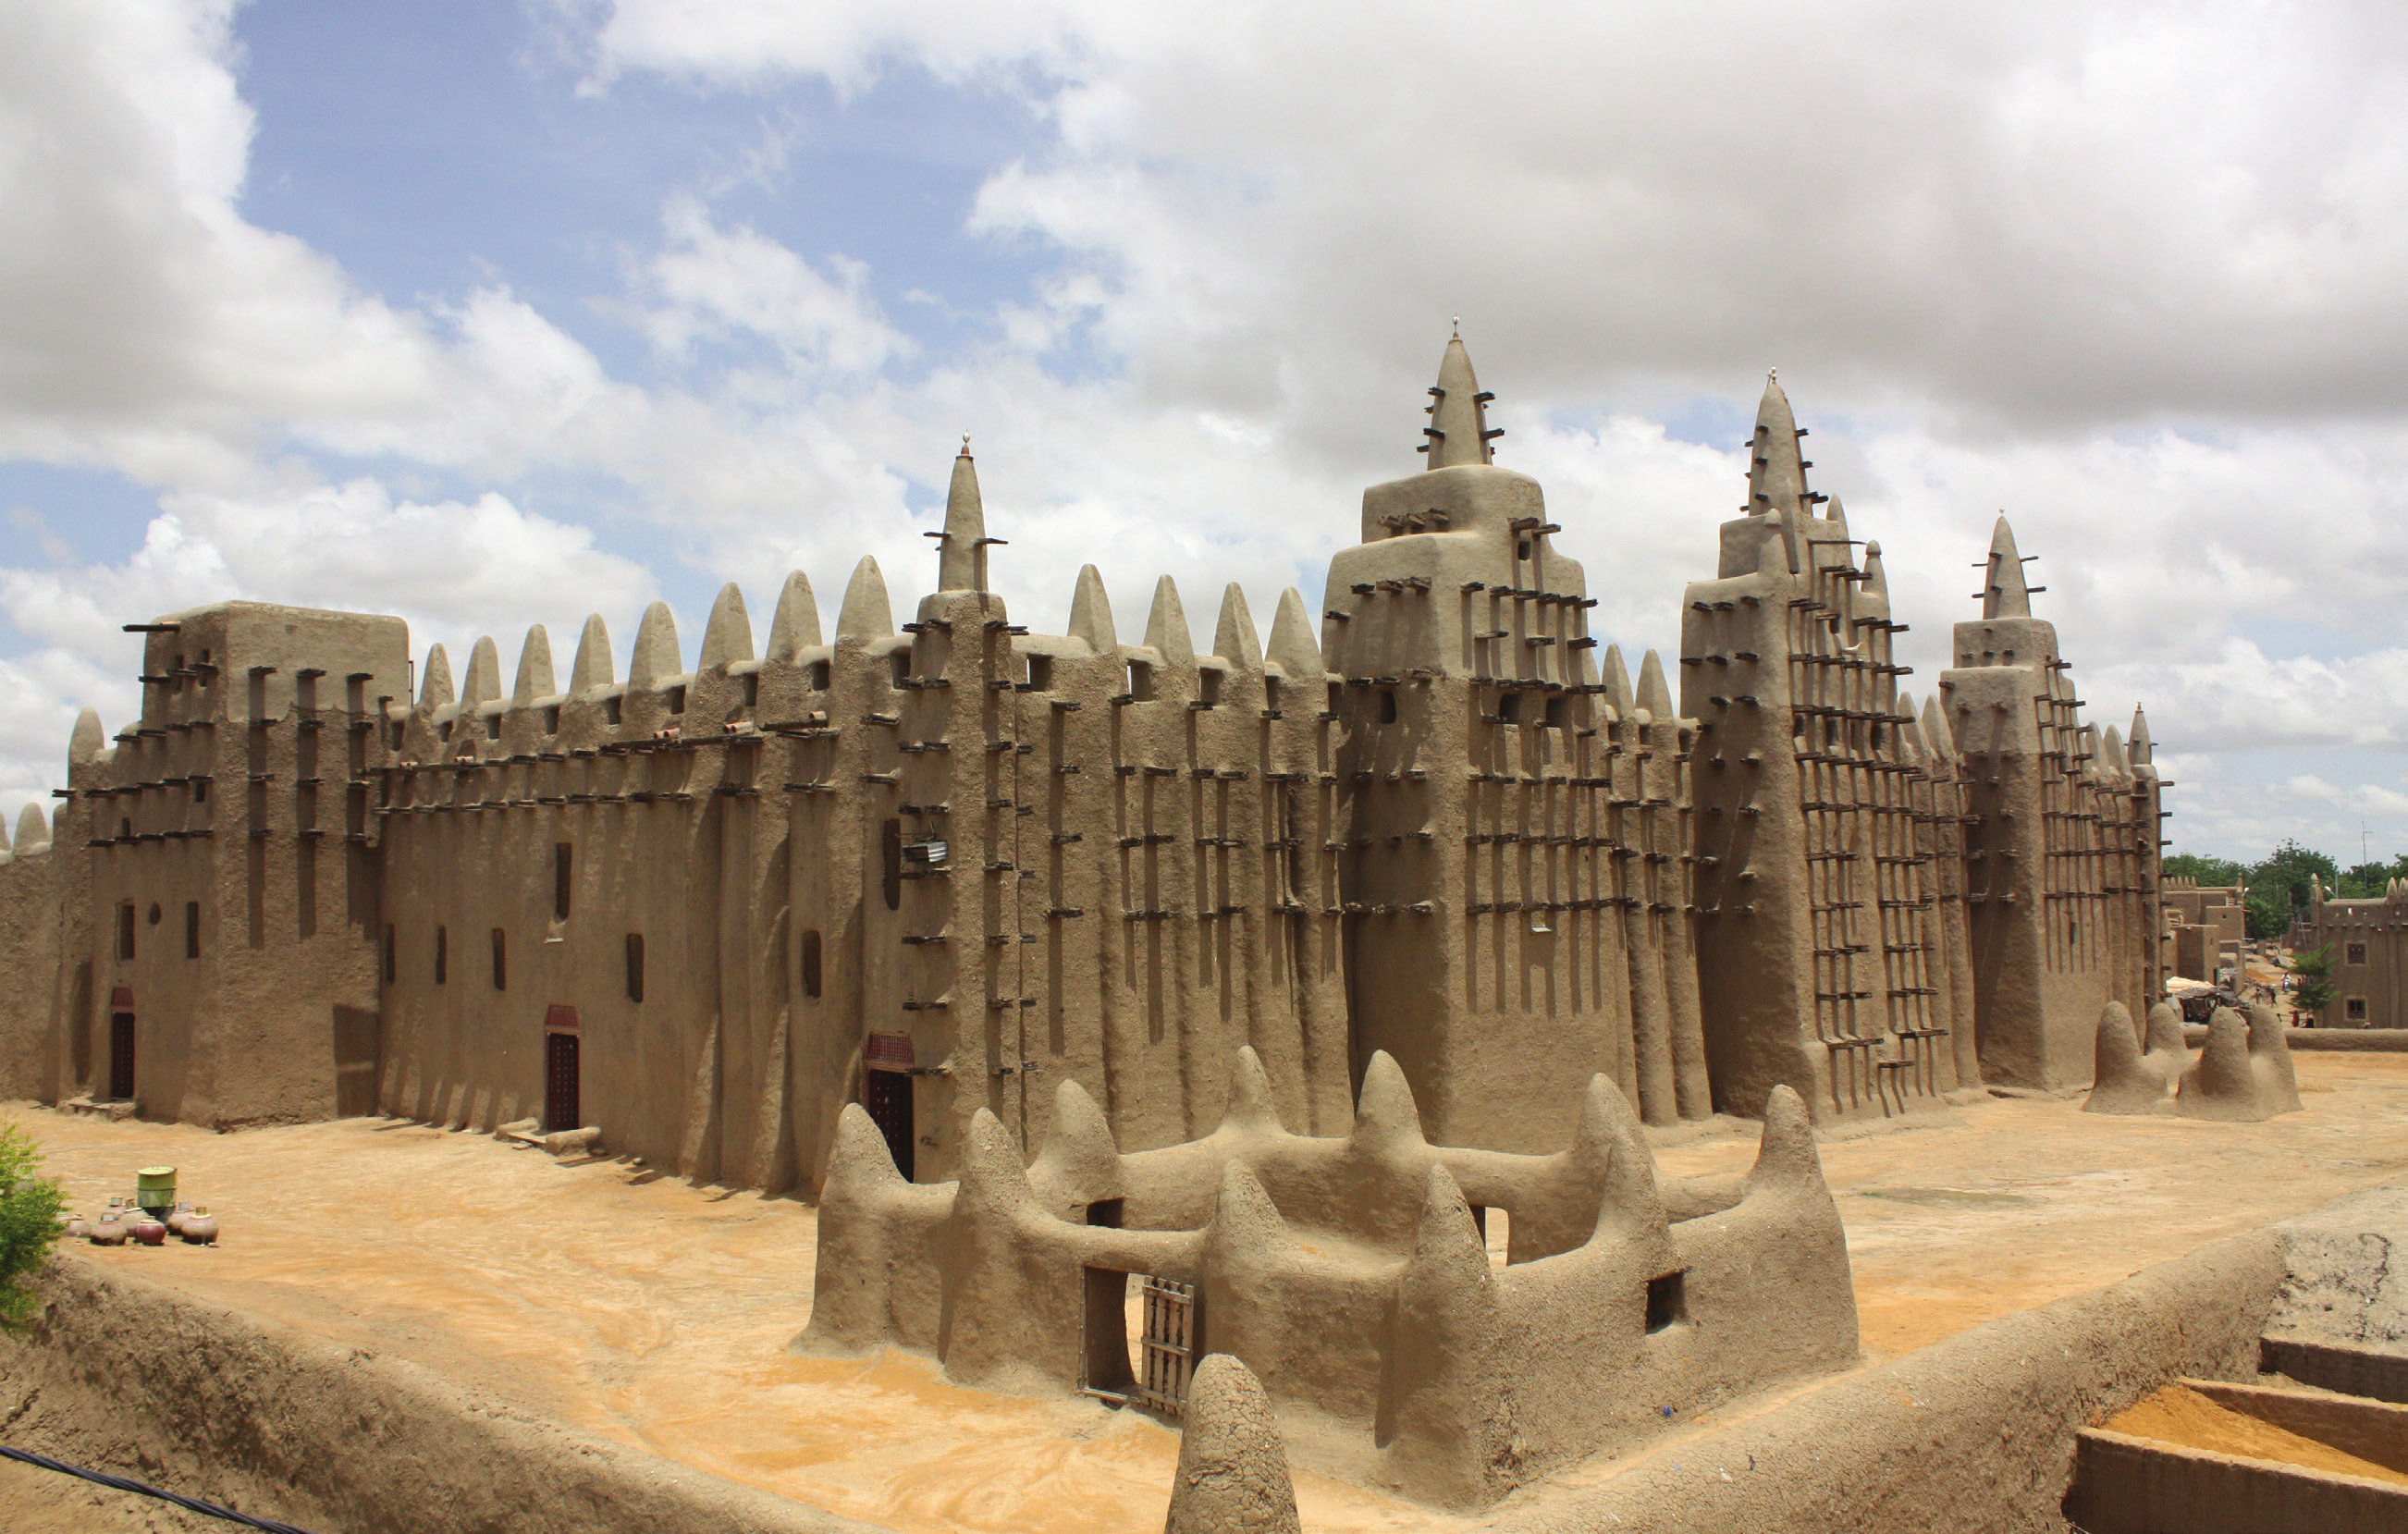 The city of Timbuktu, Sahara Desert